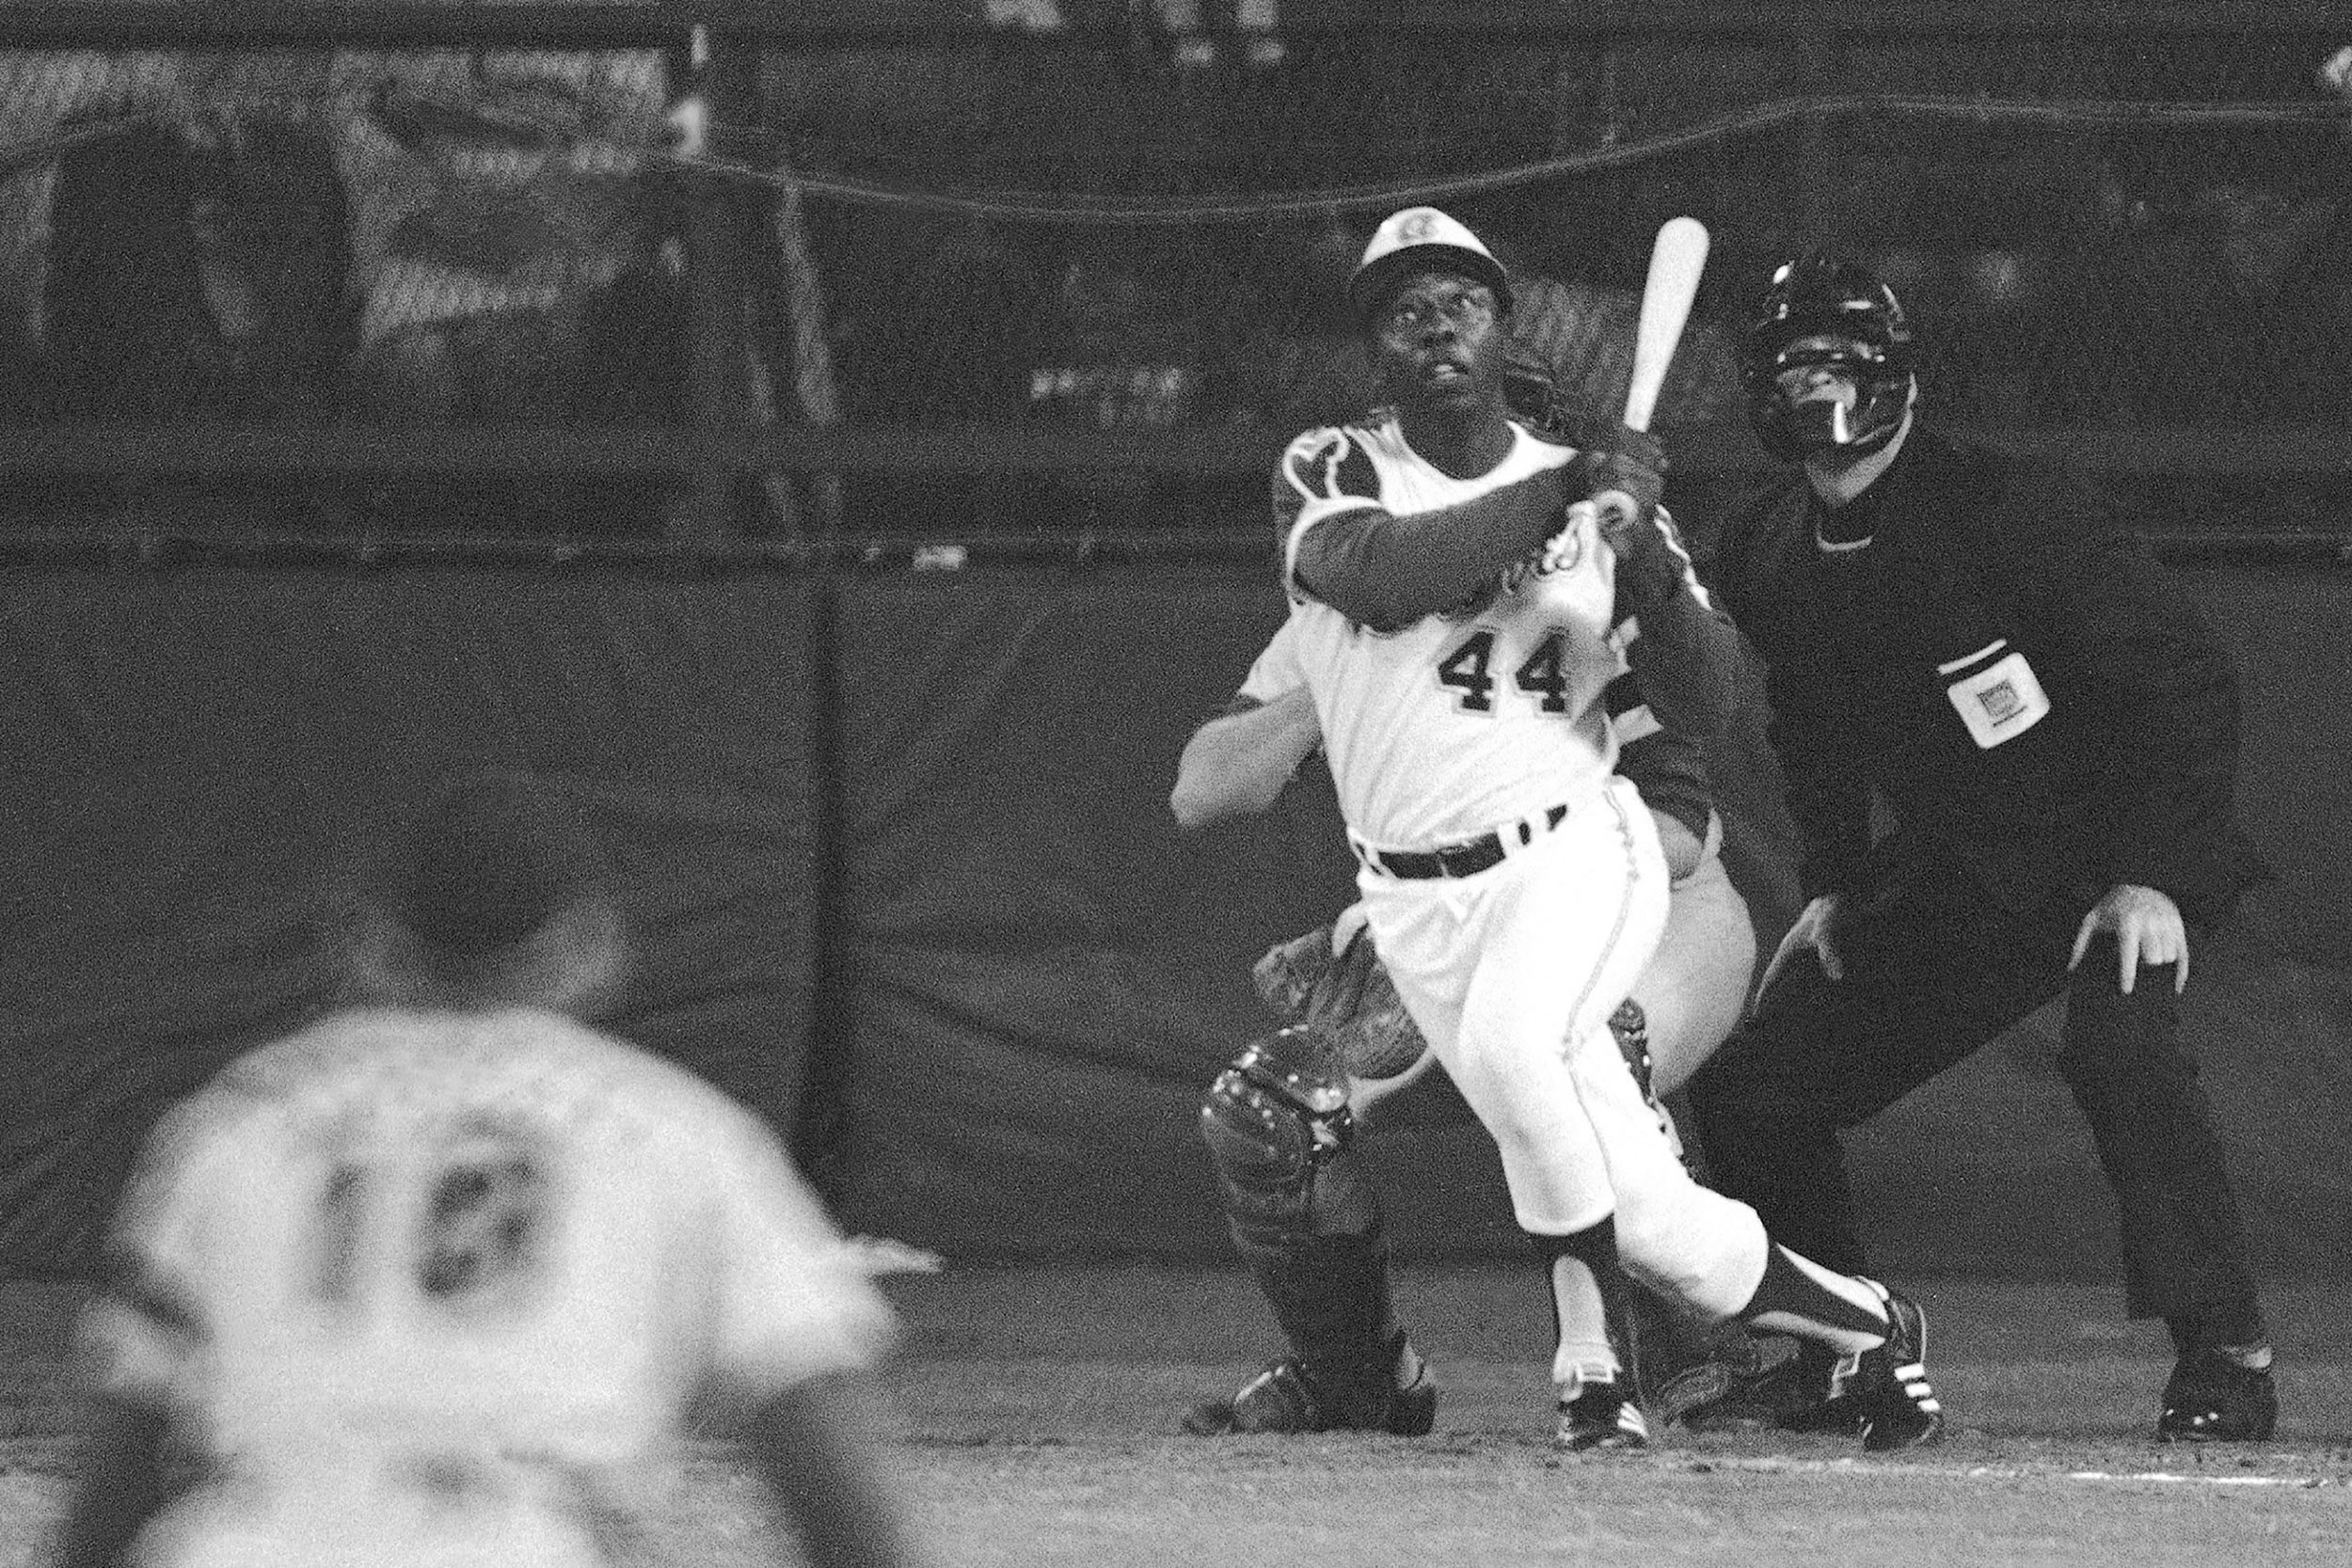 Hank Aaron rose to the top of baseball while facing pervasive racism. He leaves behind a powerful legacy